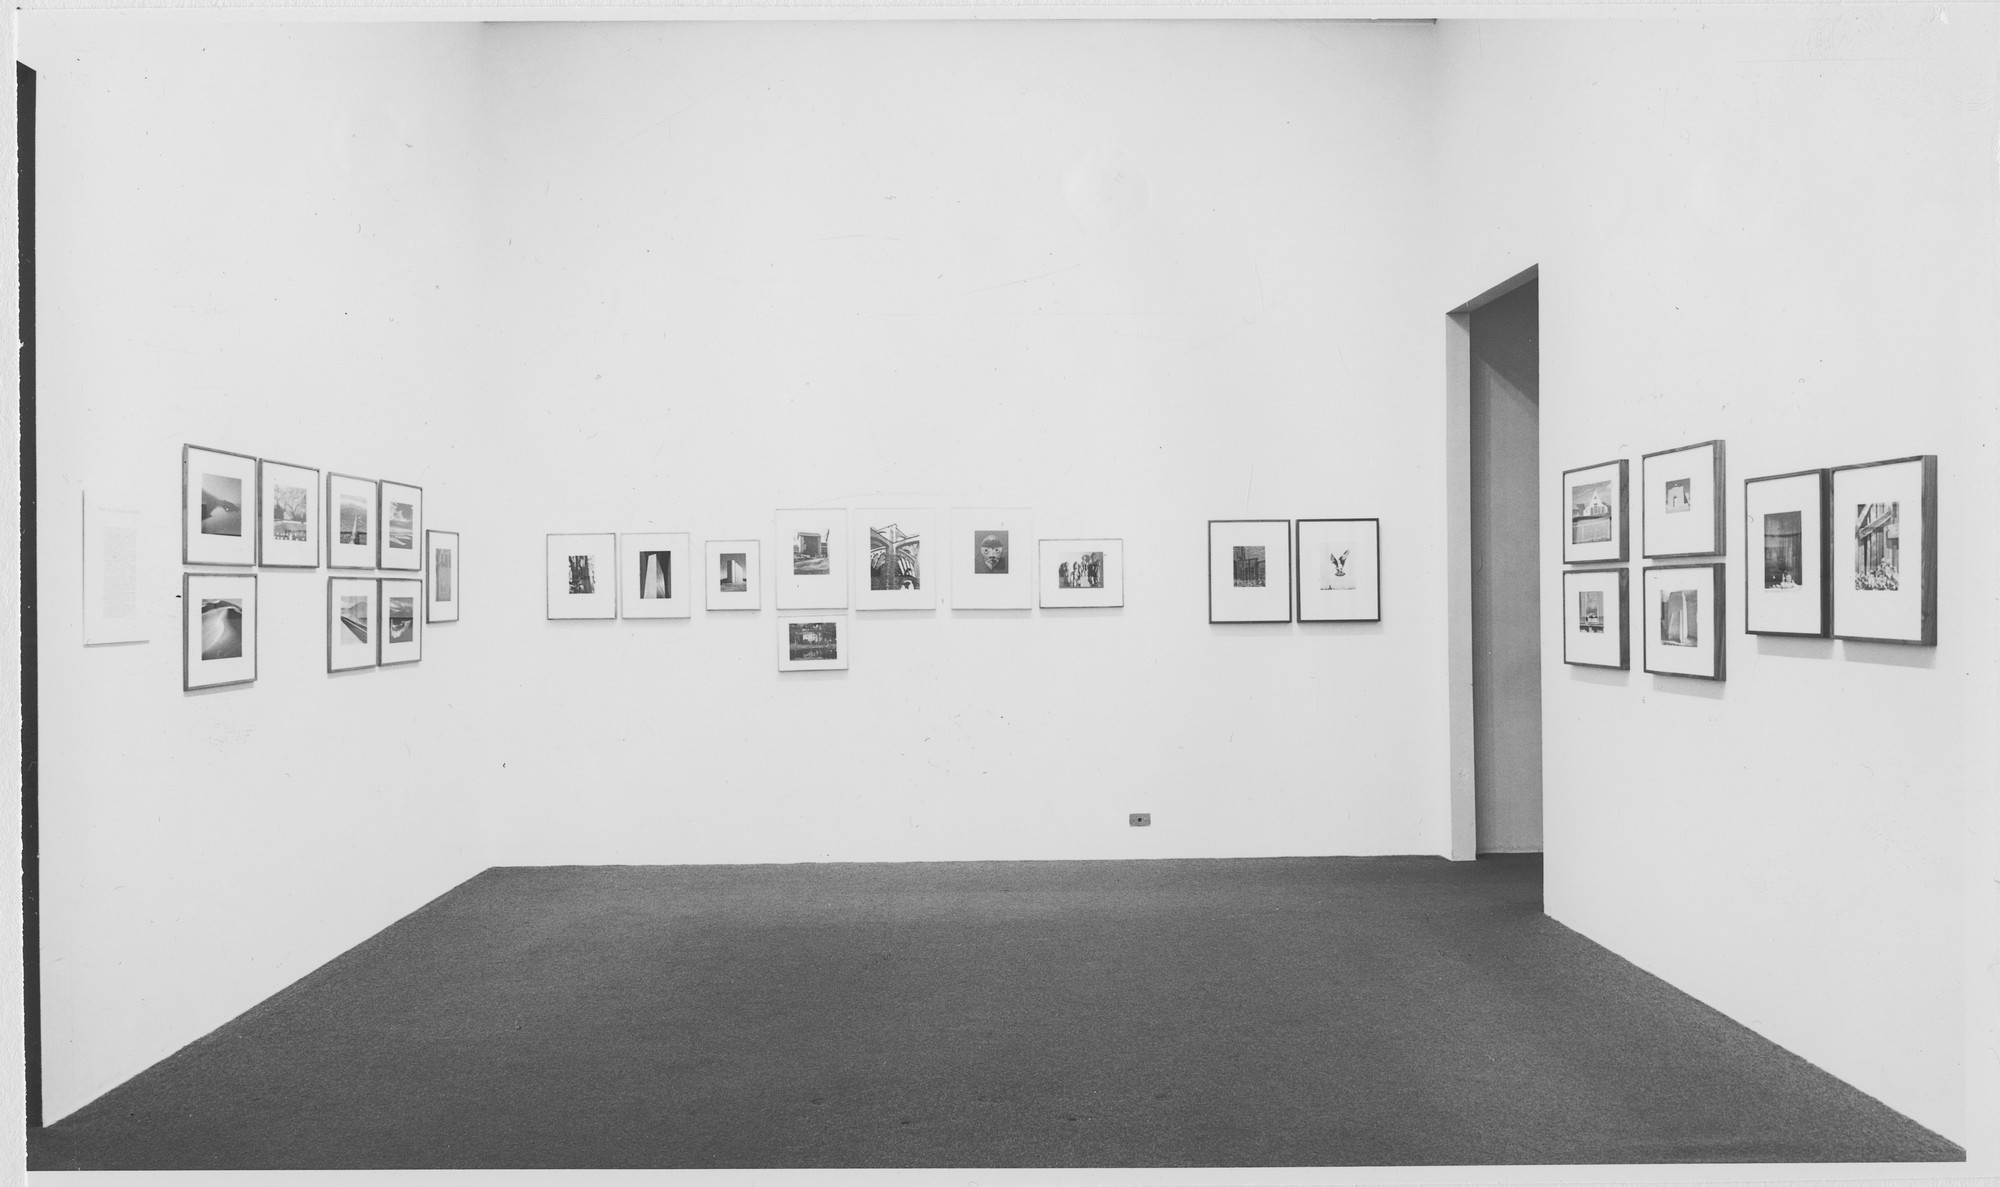 "Installation view of the exhibition, ""From the McAlpin Collection."" December 14, 1966–February 12, 1967. Photographic Archive. The Museum of Modern Art Archives, New York. IN814.1. Photograph by Rolf Petersen."